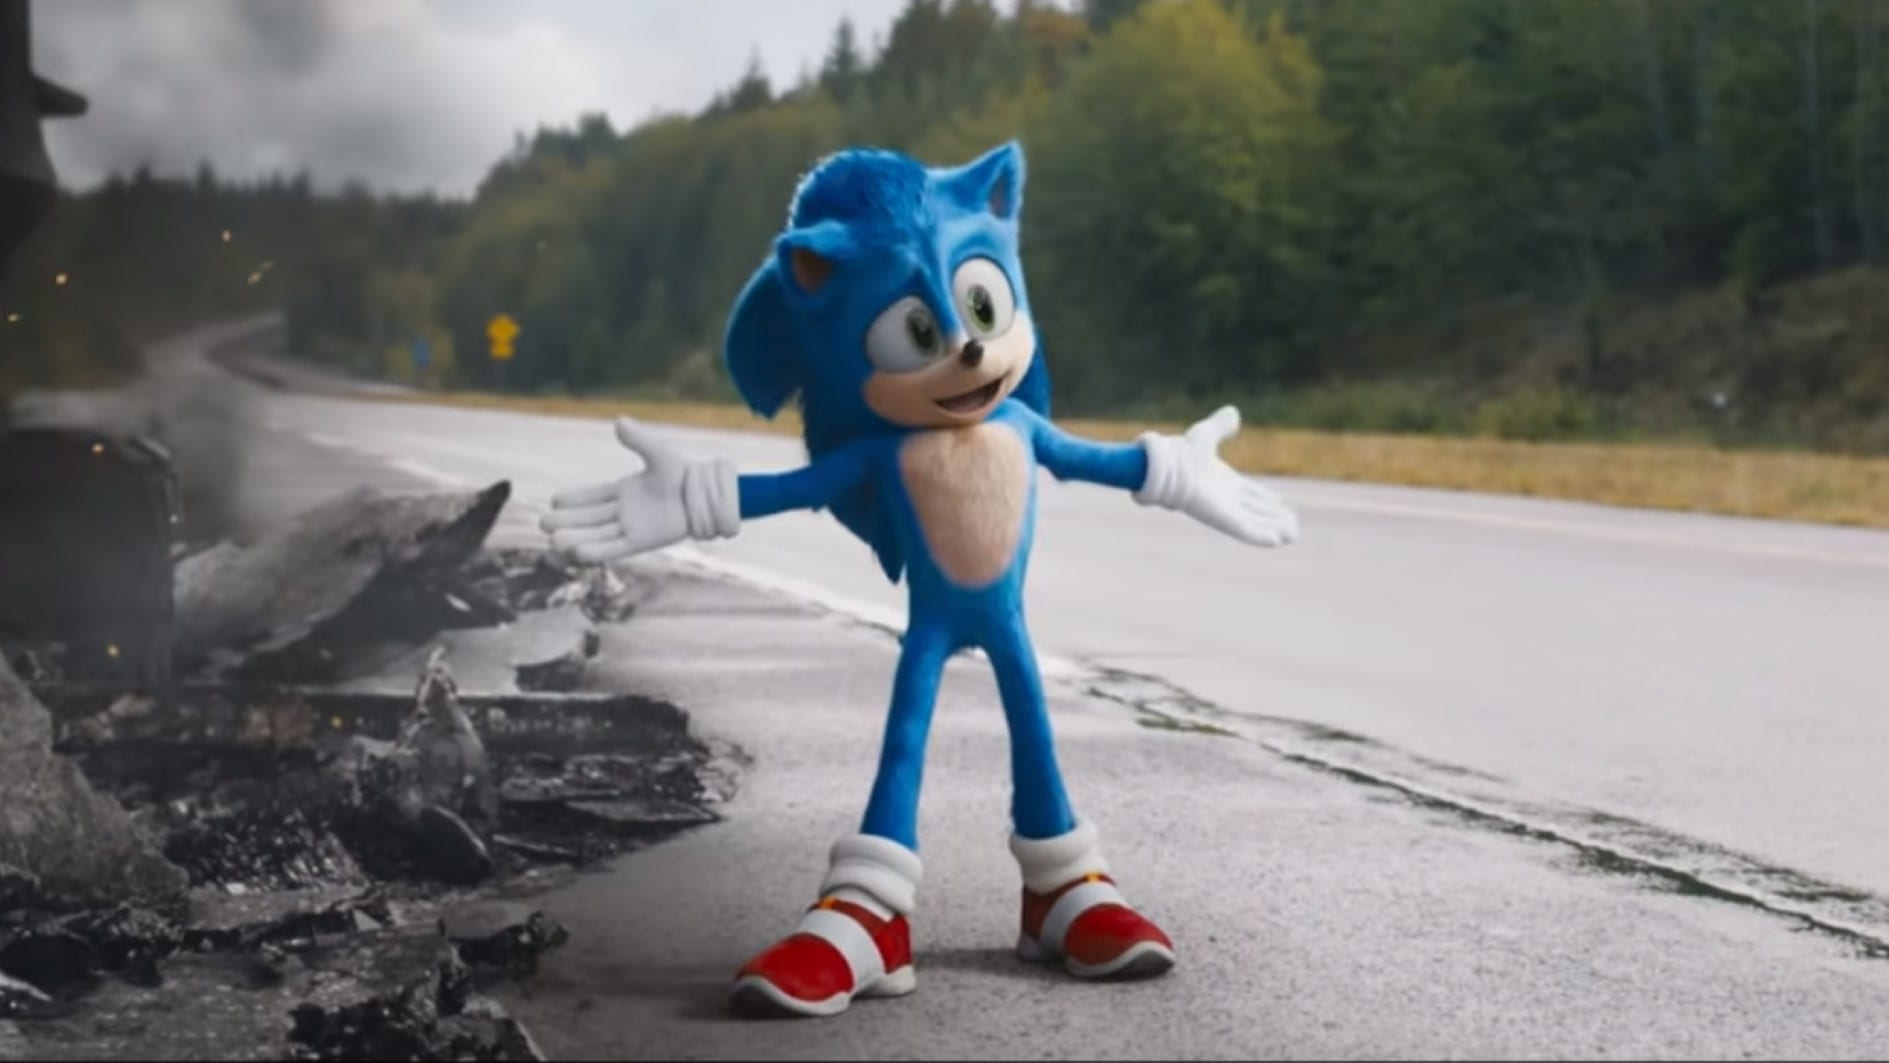 Sonic posing in a shot of Sonic the Hedgehog